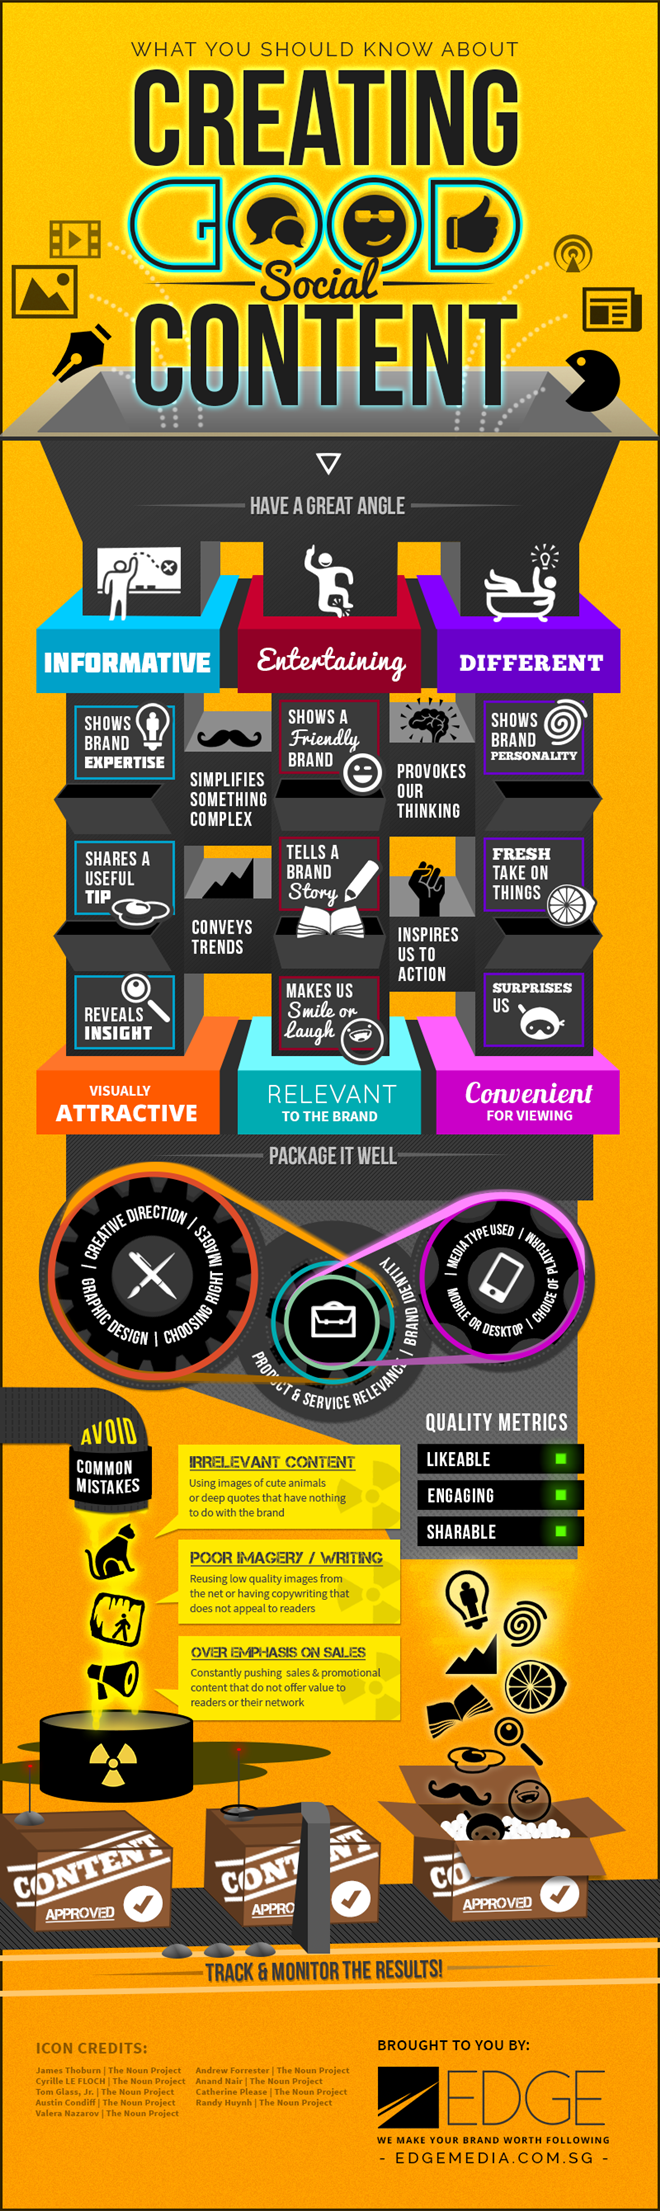 Simple-And-Effective-Tips-For-Creating-Great-Social-Content-Infographic